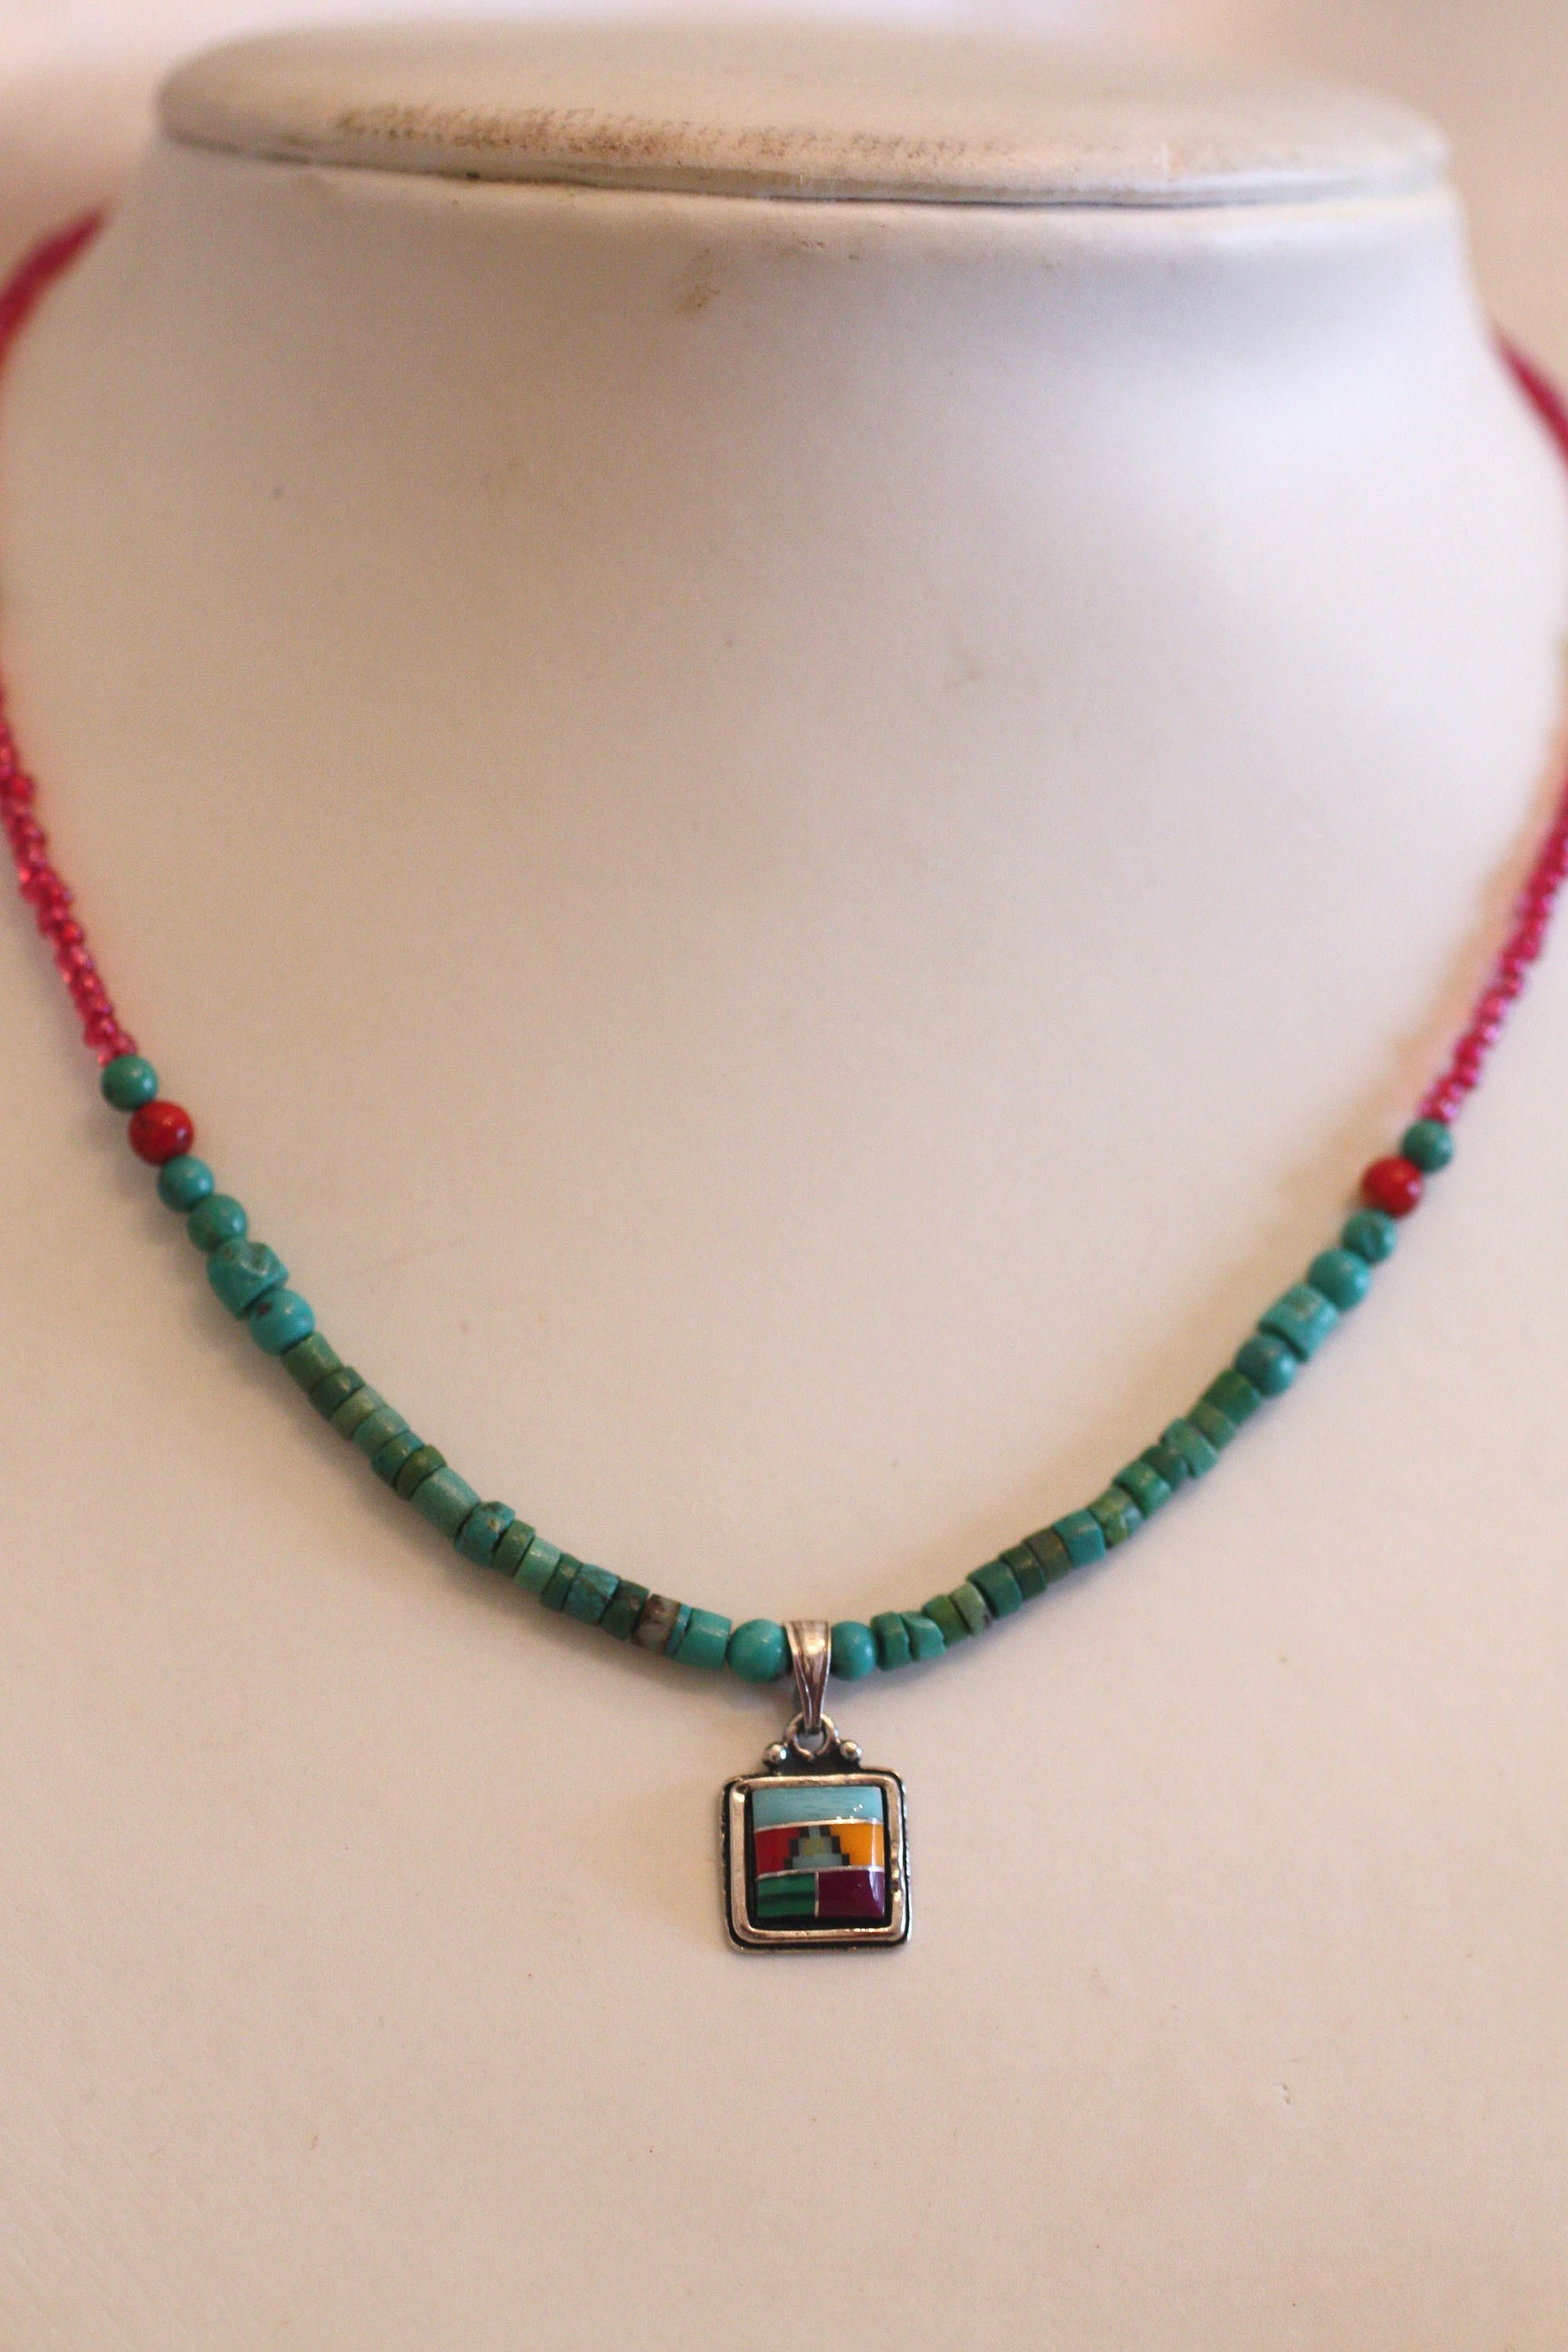 dancer pin calabaza kachina bull zuni inlay necklace indian ronnie or pendant cow olivia vintage